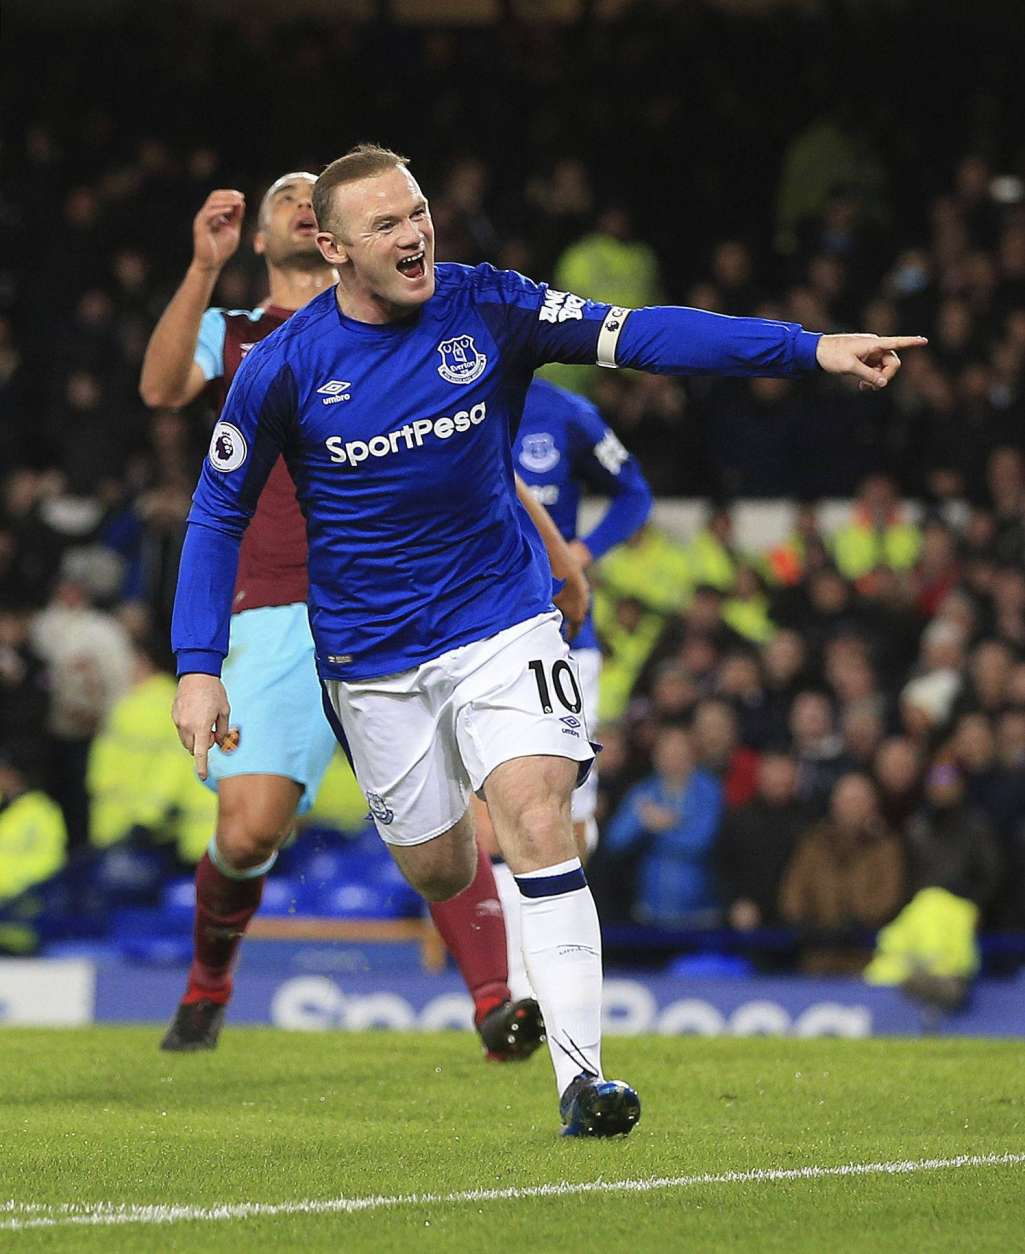 Everton's Wayne Rooney celebrates scoring his side's first goal against West Ham United during the English Premier League soccer match at Goodison Park, Liverpool, England, Wednesday Nov. 29, 2017. (Peter Byrne/PA via AP)